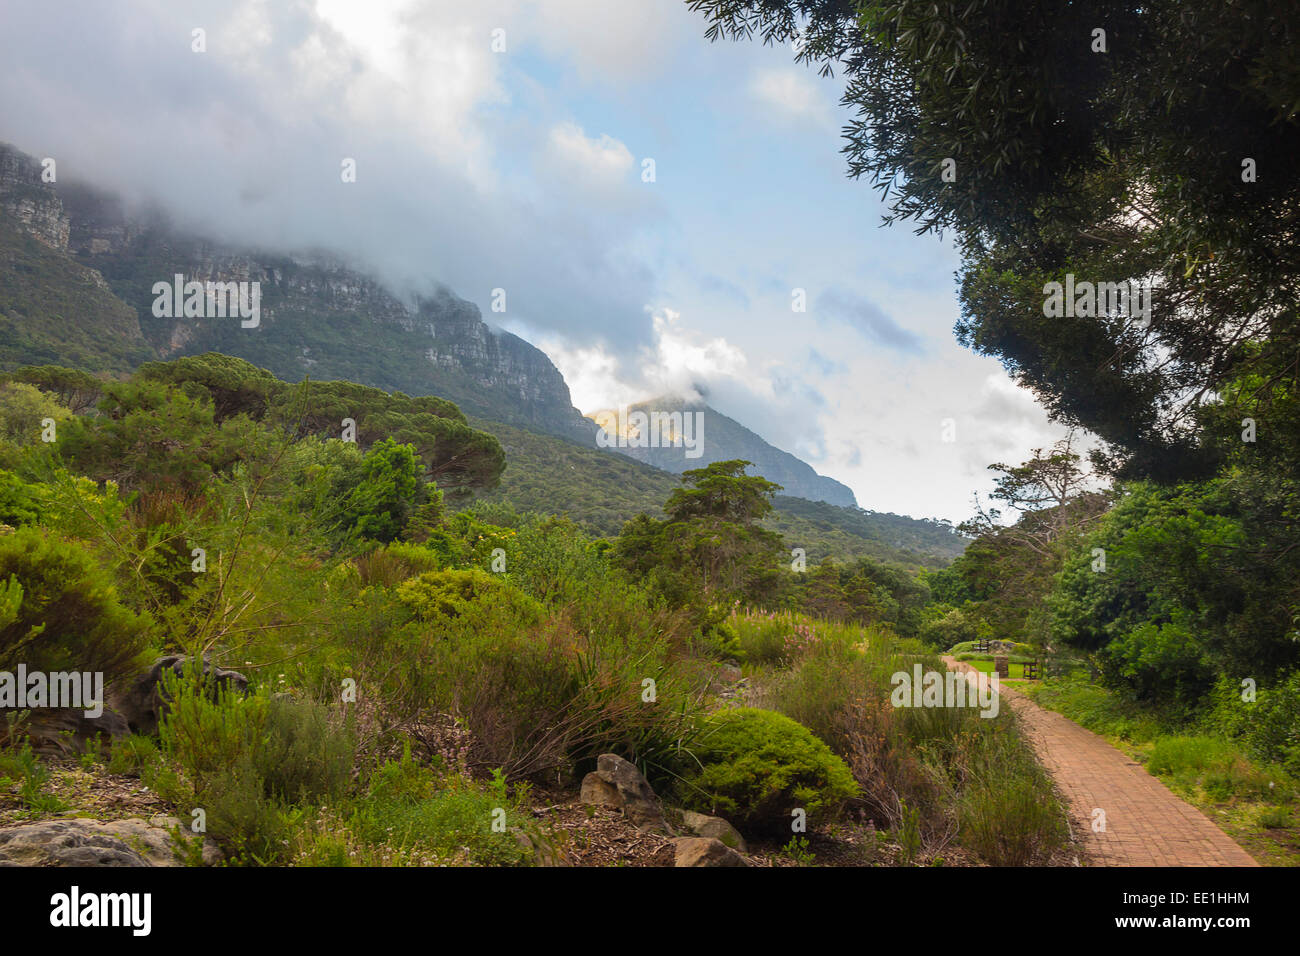 Kirstenbosch Gardens on a partly cloudy day with pathway - Stock Image